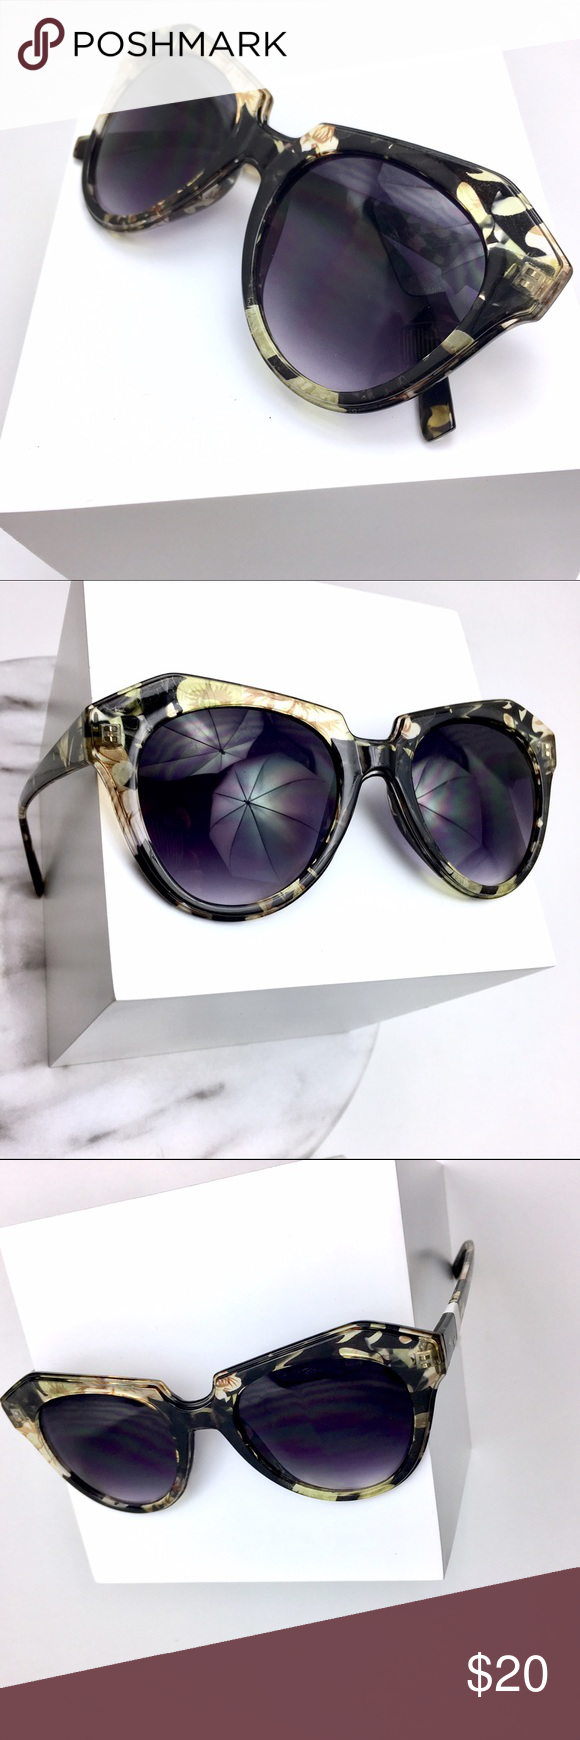 Free People Green Abstract Print Sunnies Beautiful Green printed style sunglasses from Free People. Be fancy and Gorg in these sunnies. This come with no case. Brand New. Free People Accessories Sunglasses